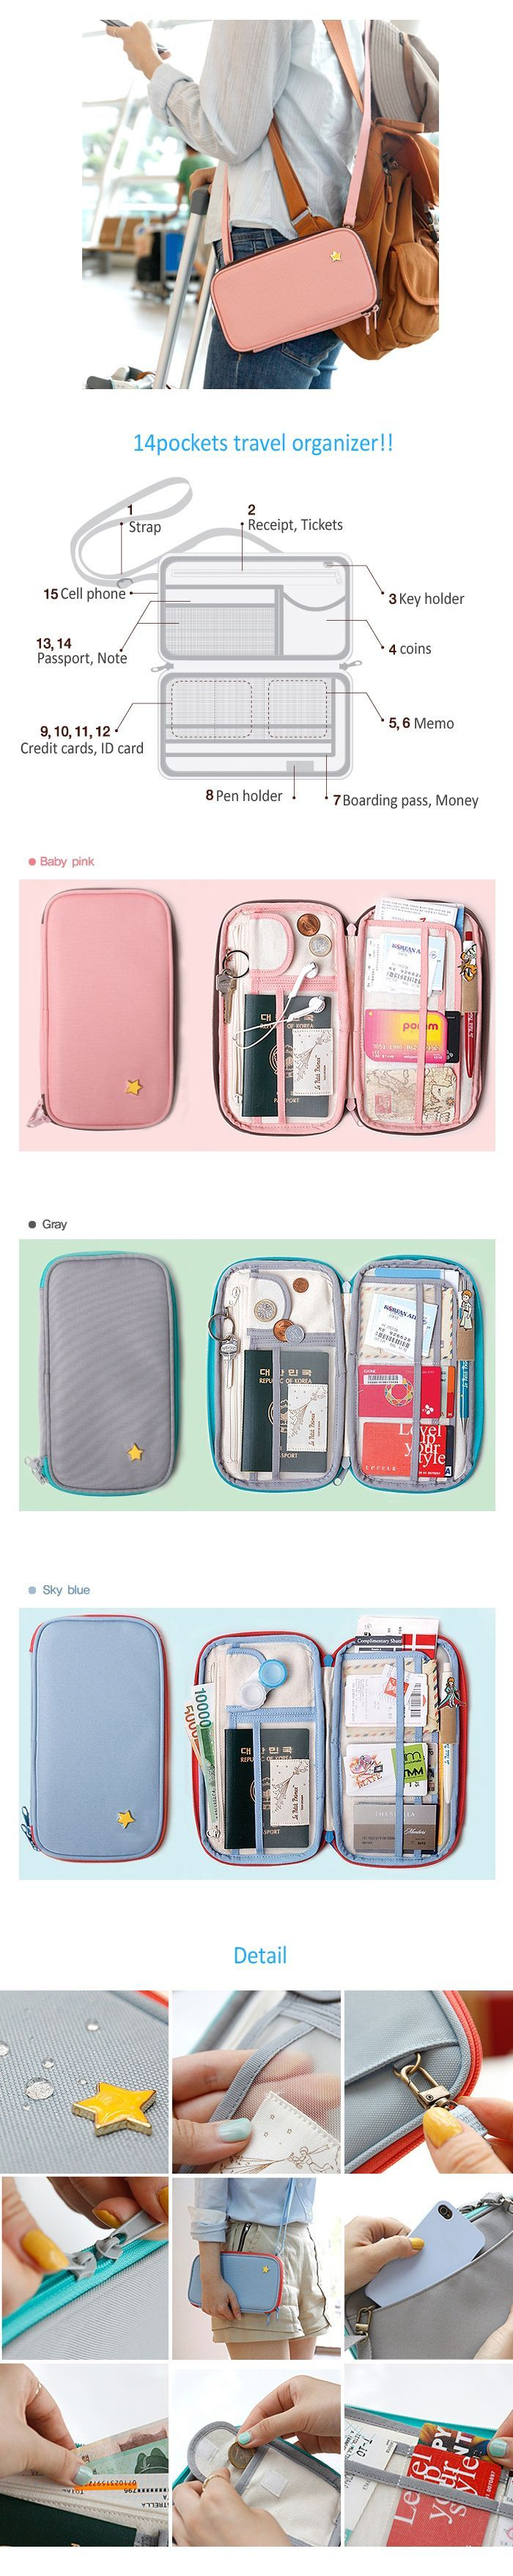 Little Prince B612 Travel Organizer Bag with Strap Passport Holder Case Wallet | eBay